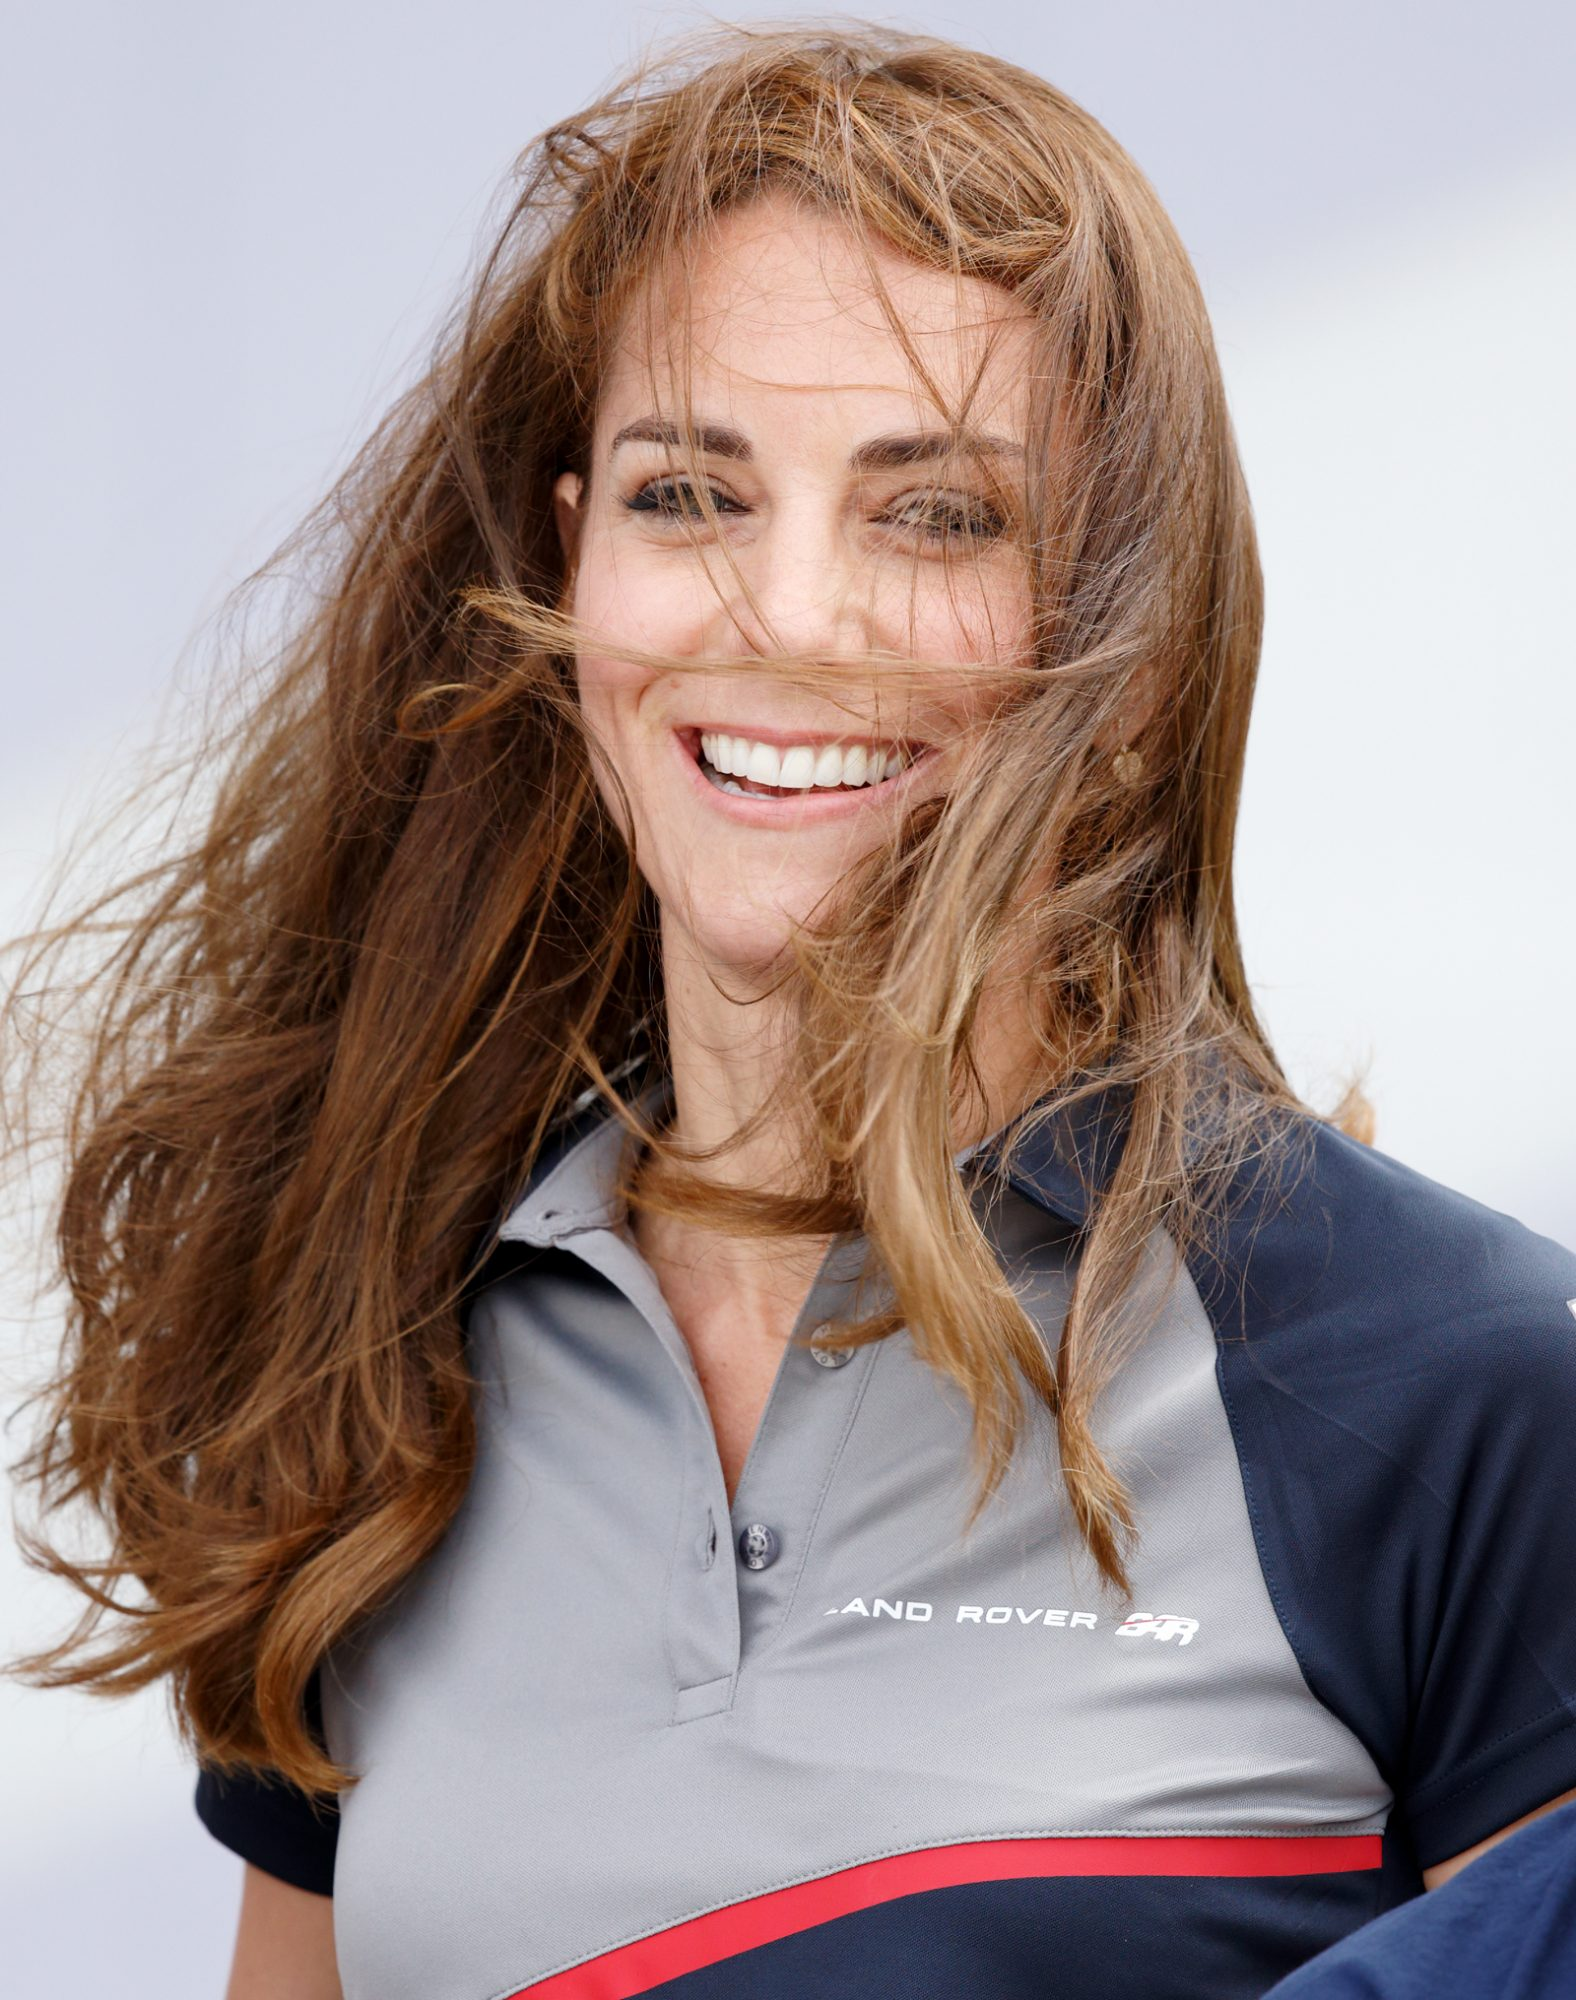 Clone of Kate Middleton Being Real - 8/Lead